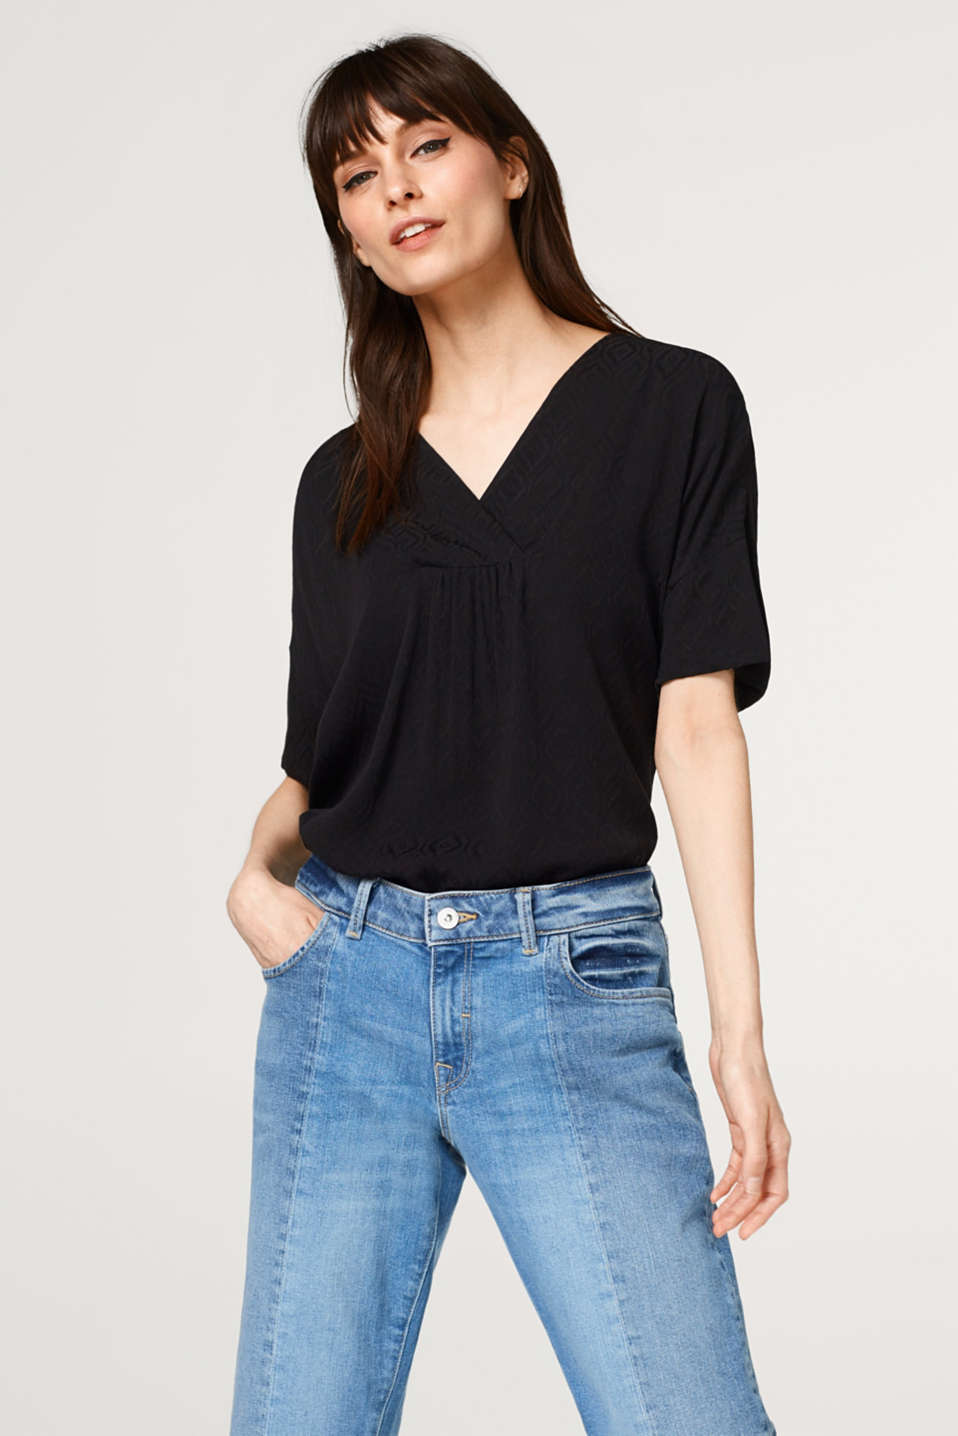 Esprit - Lightweight jacquard blouse with a V-neckline